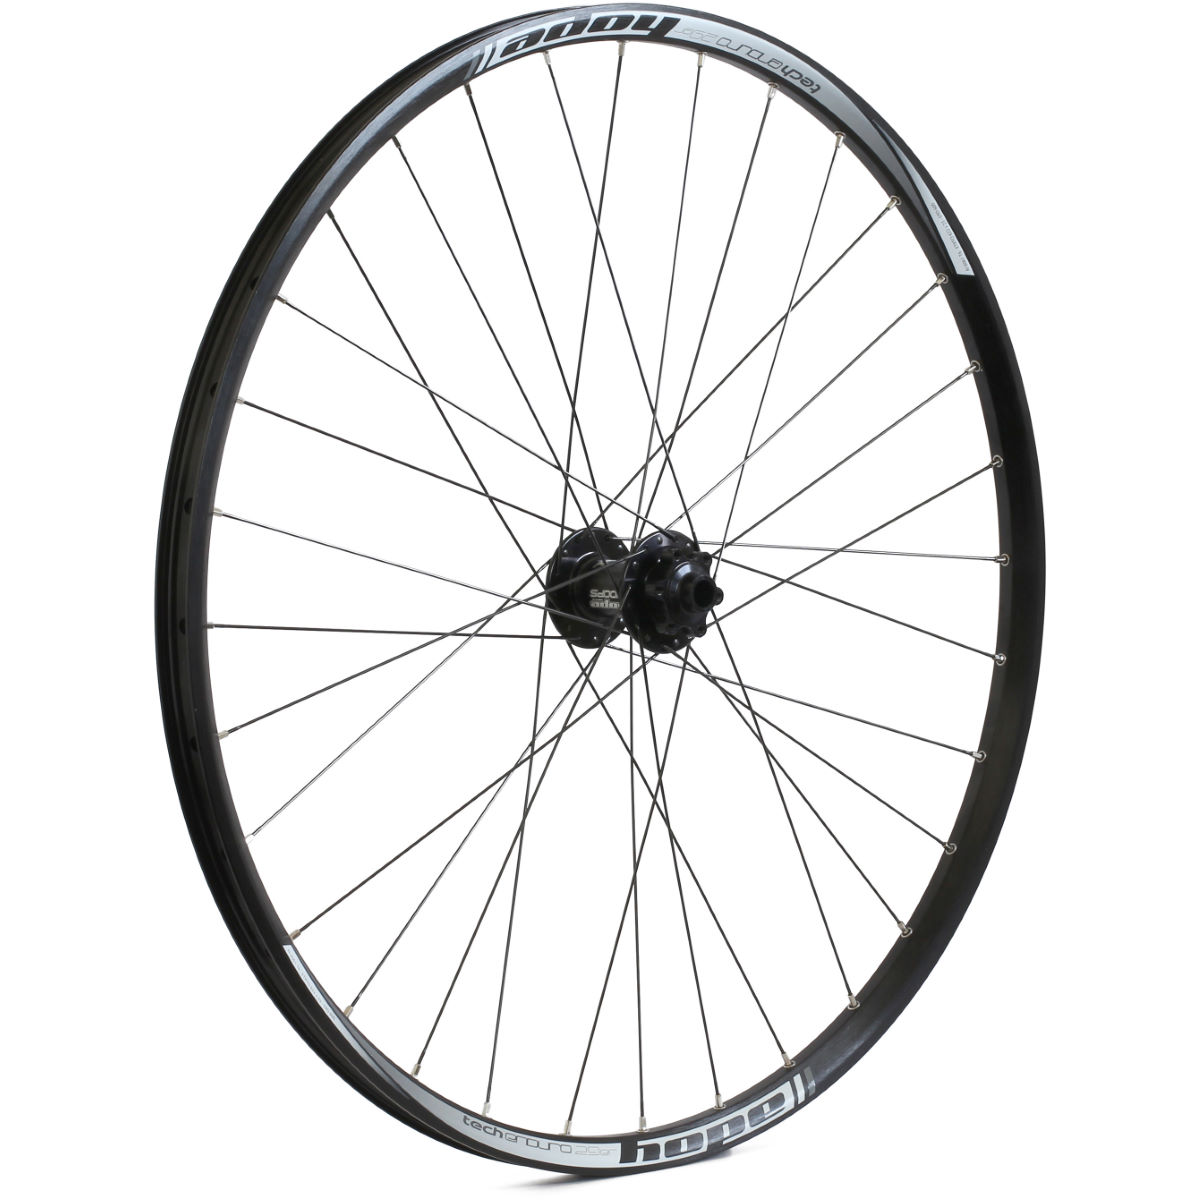 Roue avant VTT Hope Pro 4 Tech Enduro - 29'', 110mm Axle Noir